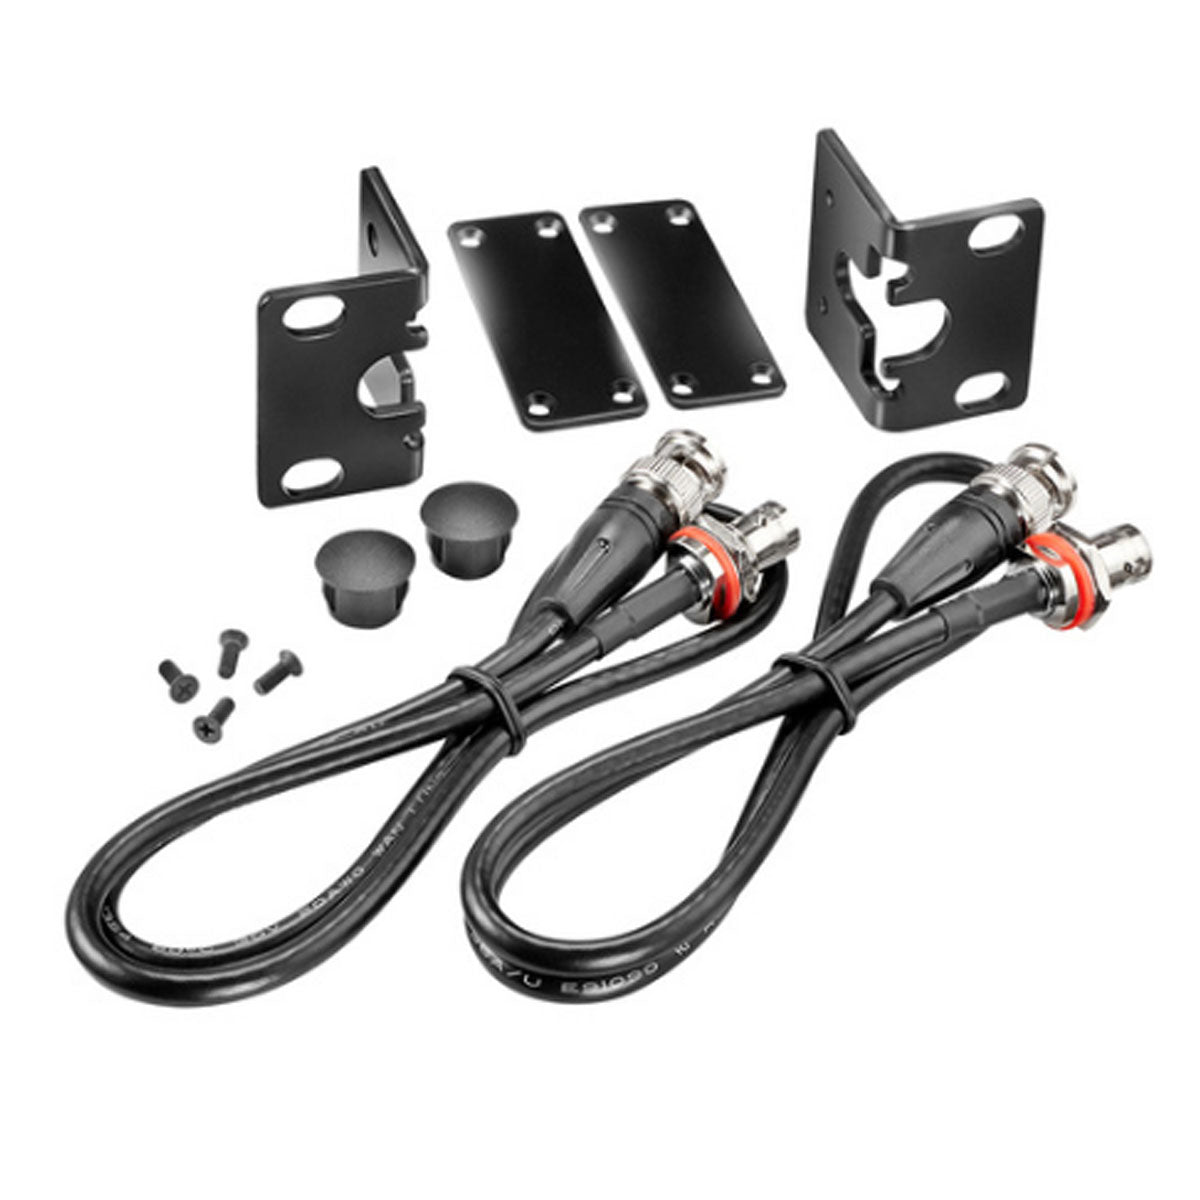 Electro-Voice RE3-ACC-RMK2 Rack Mount Kit for Two RE3 Receivers